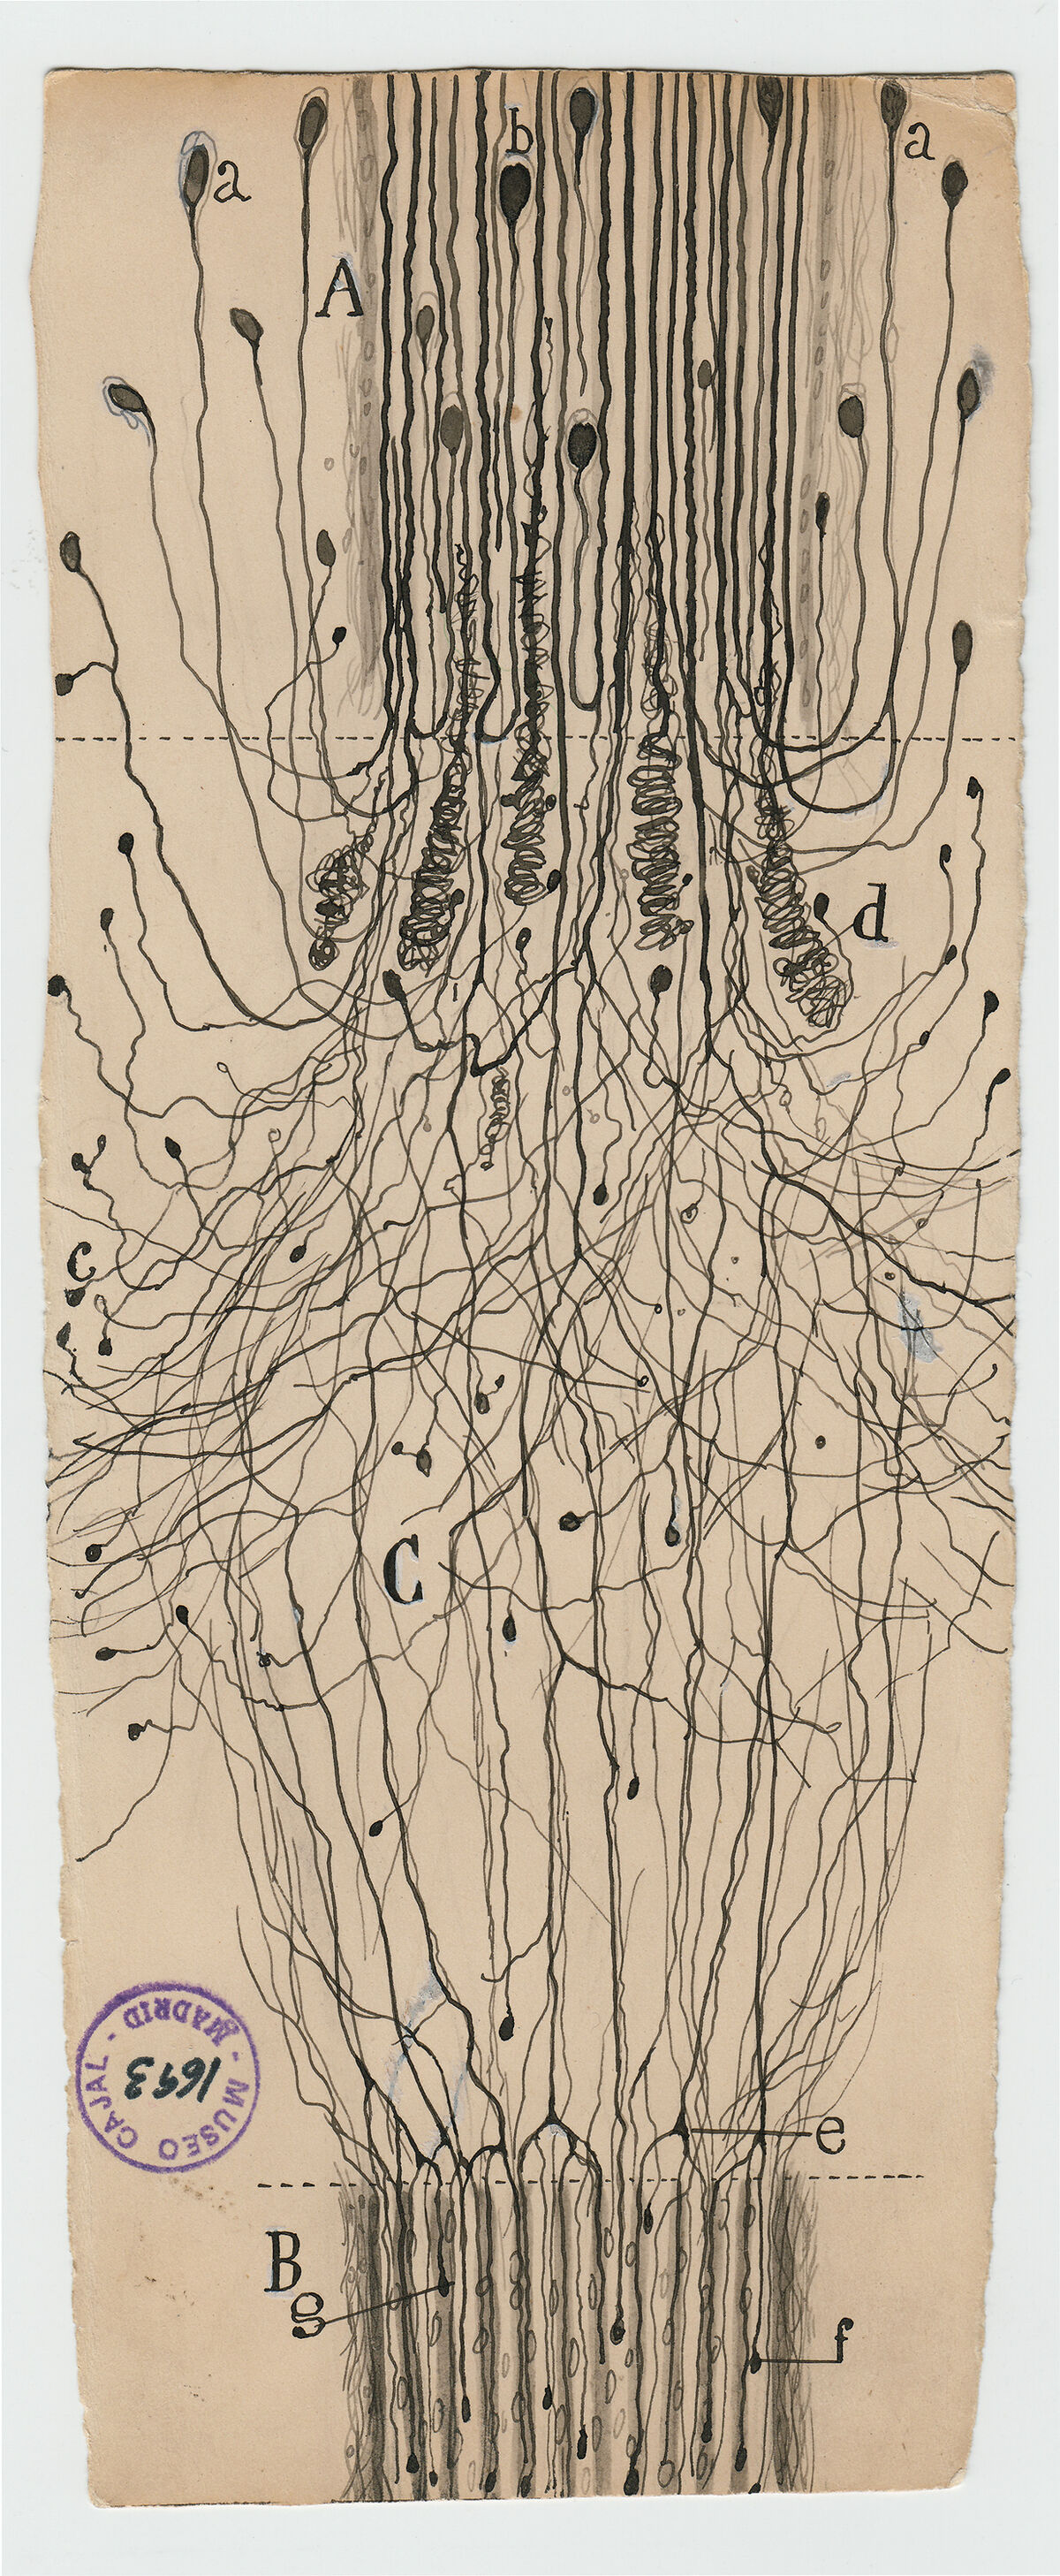 Santiago Ramón y Cajal, A cut nerve outside the spinal cord, 1913. Courtesy of Cajal Institute (CSIC), Madrid.